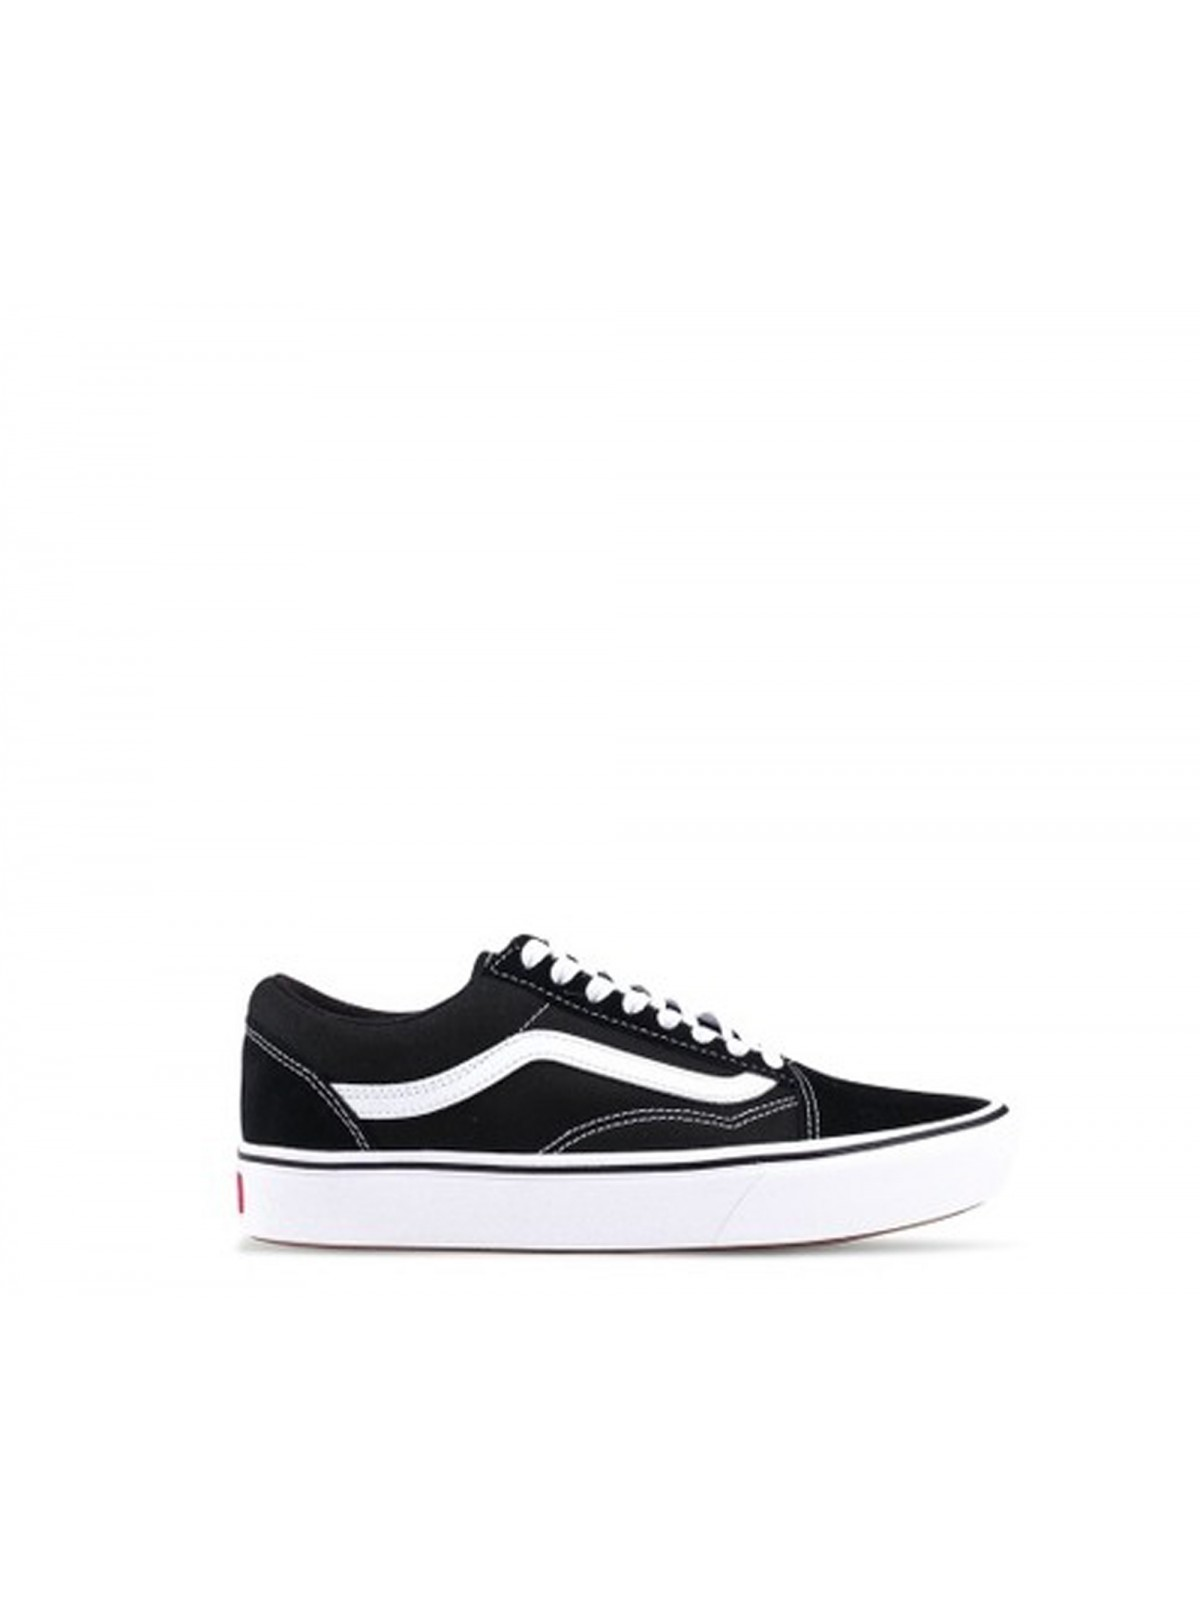 Vans oldskool junior black blanc